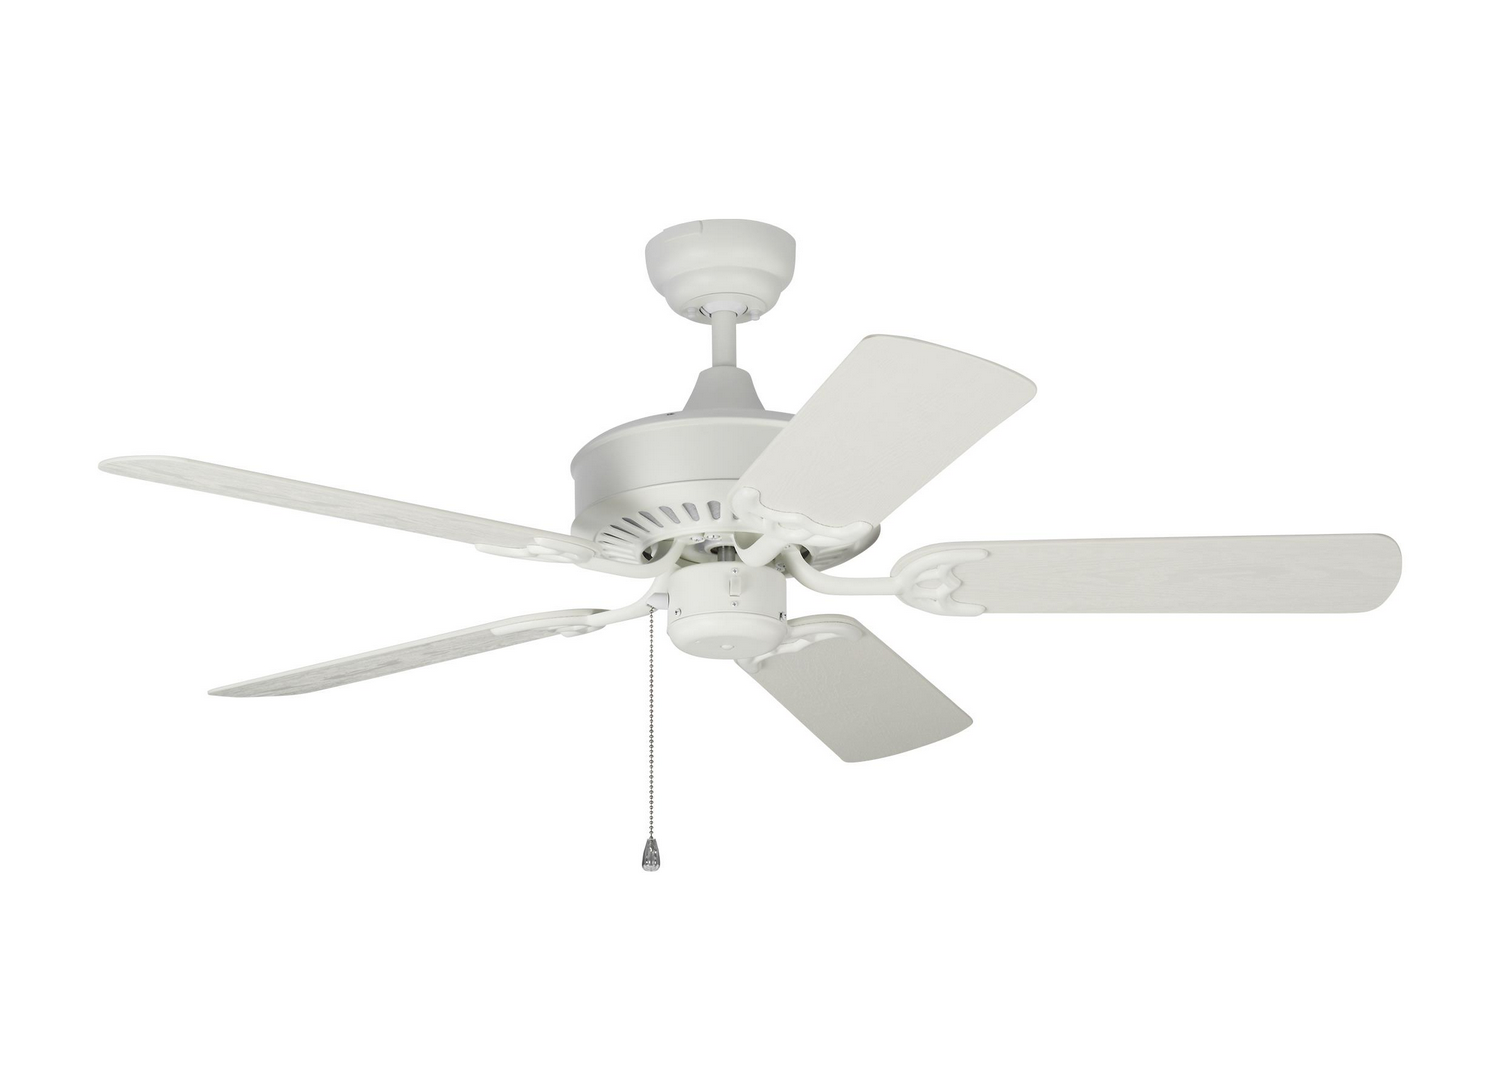 44 inch Ceiling Fan from the Haven 44 Outdoor collection by Monte Carlo 5HVO44RZW